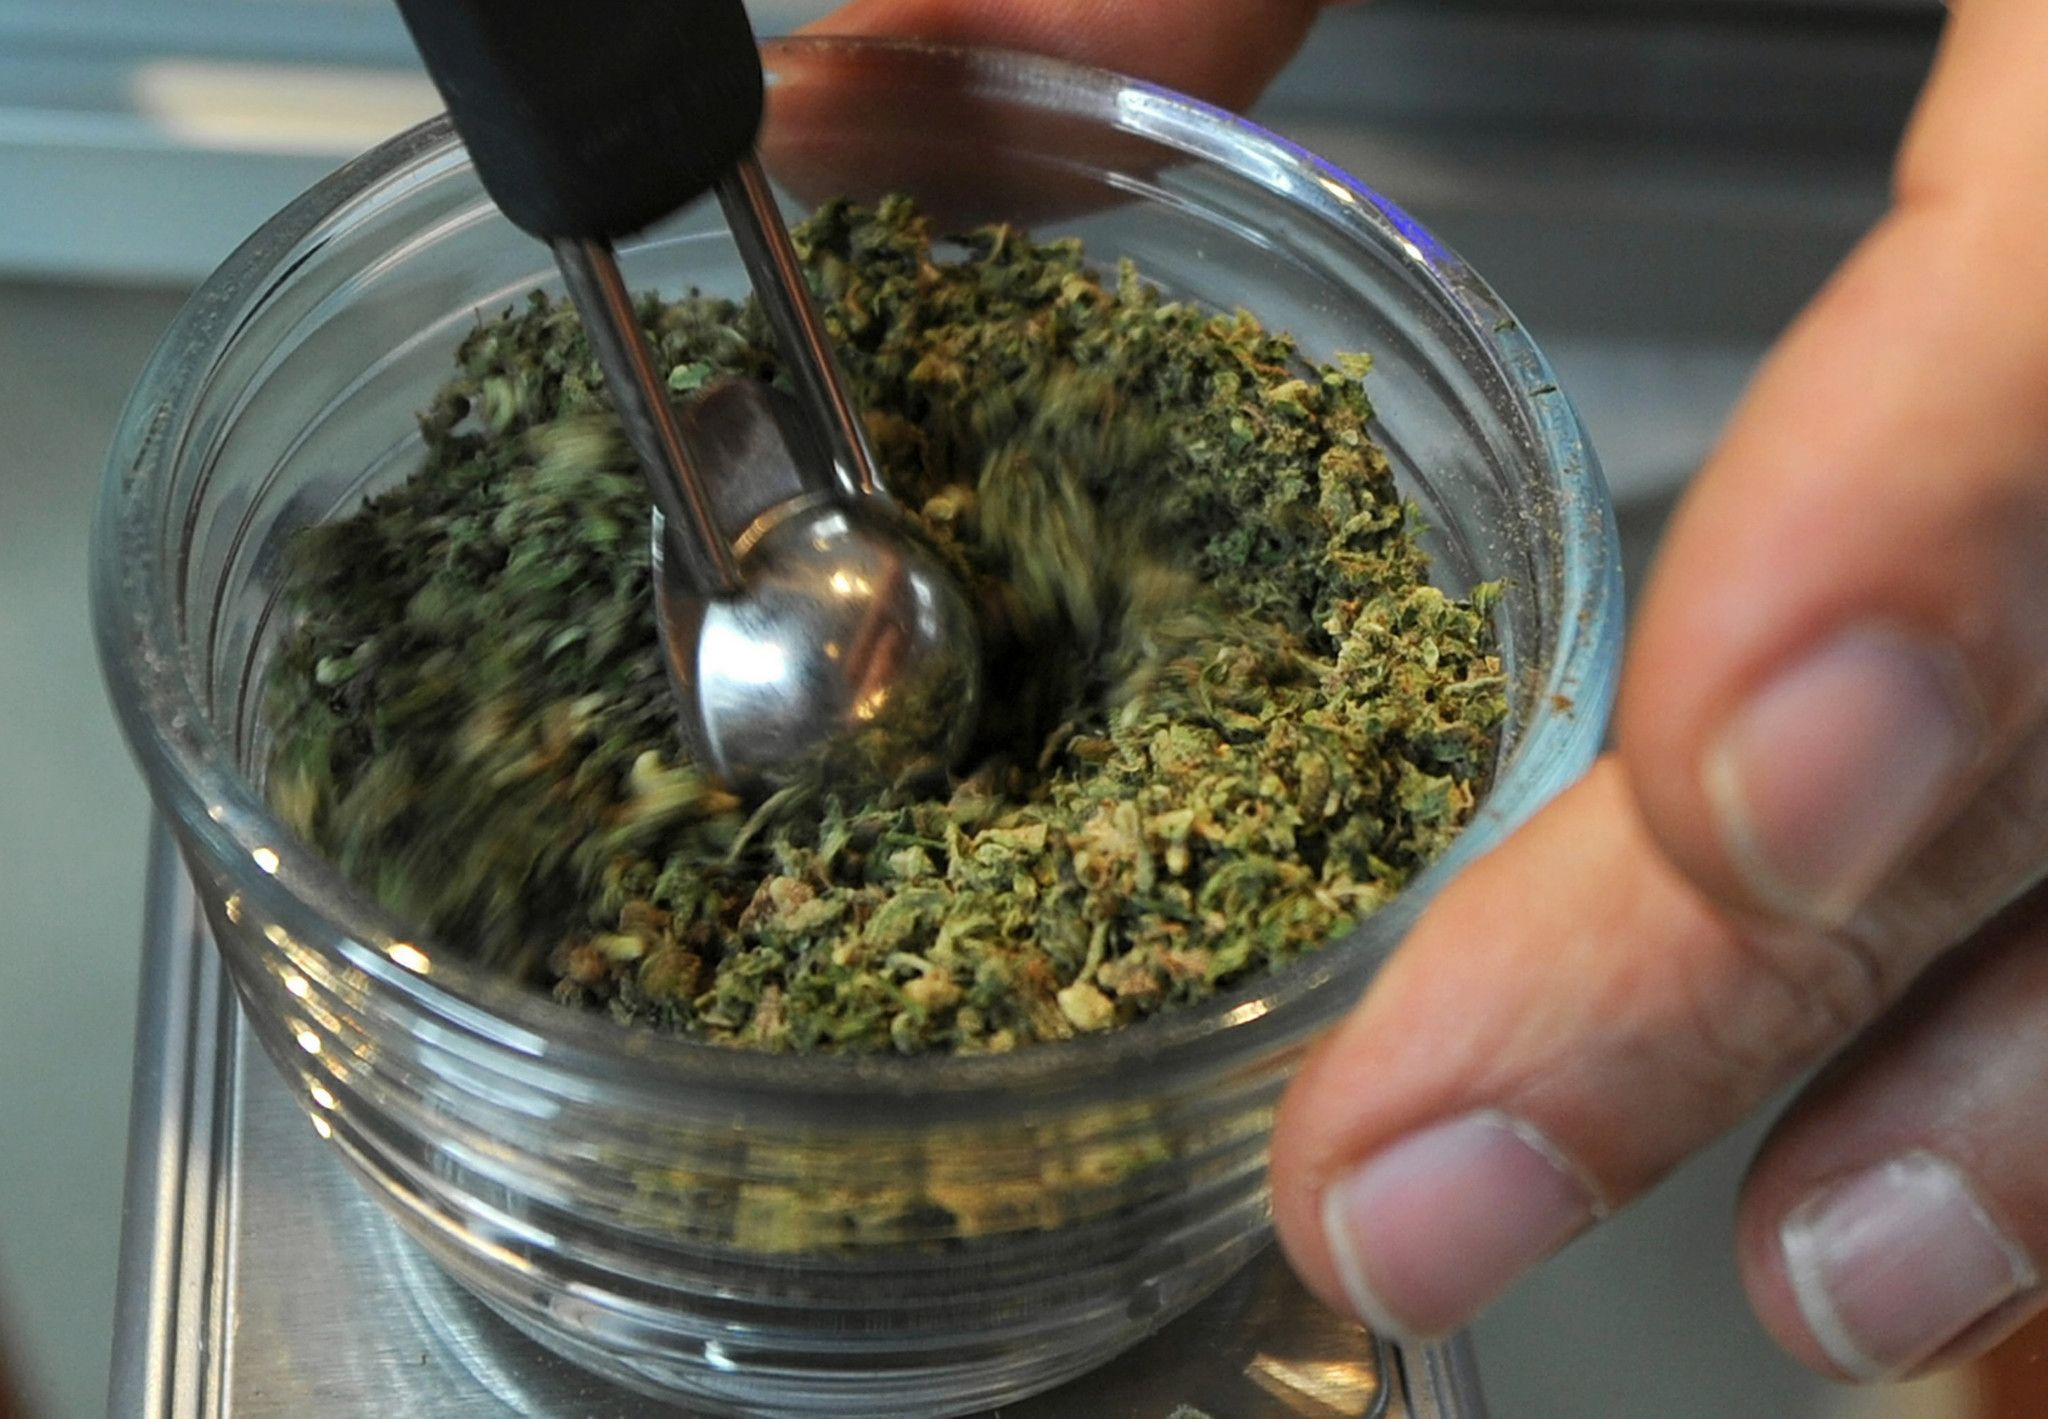 Hearing scheduled for first medical marijuana dispensary in Anne Arundel